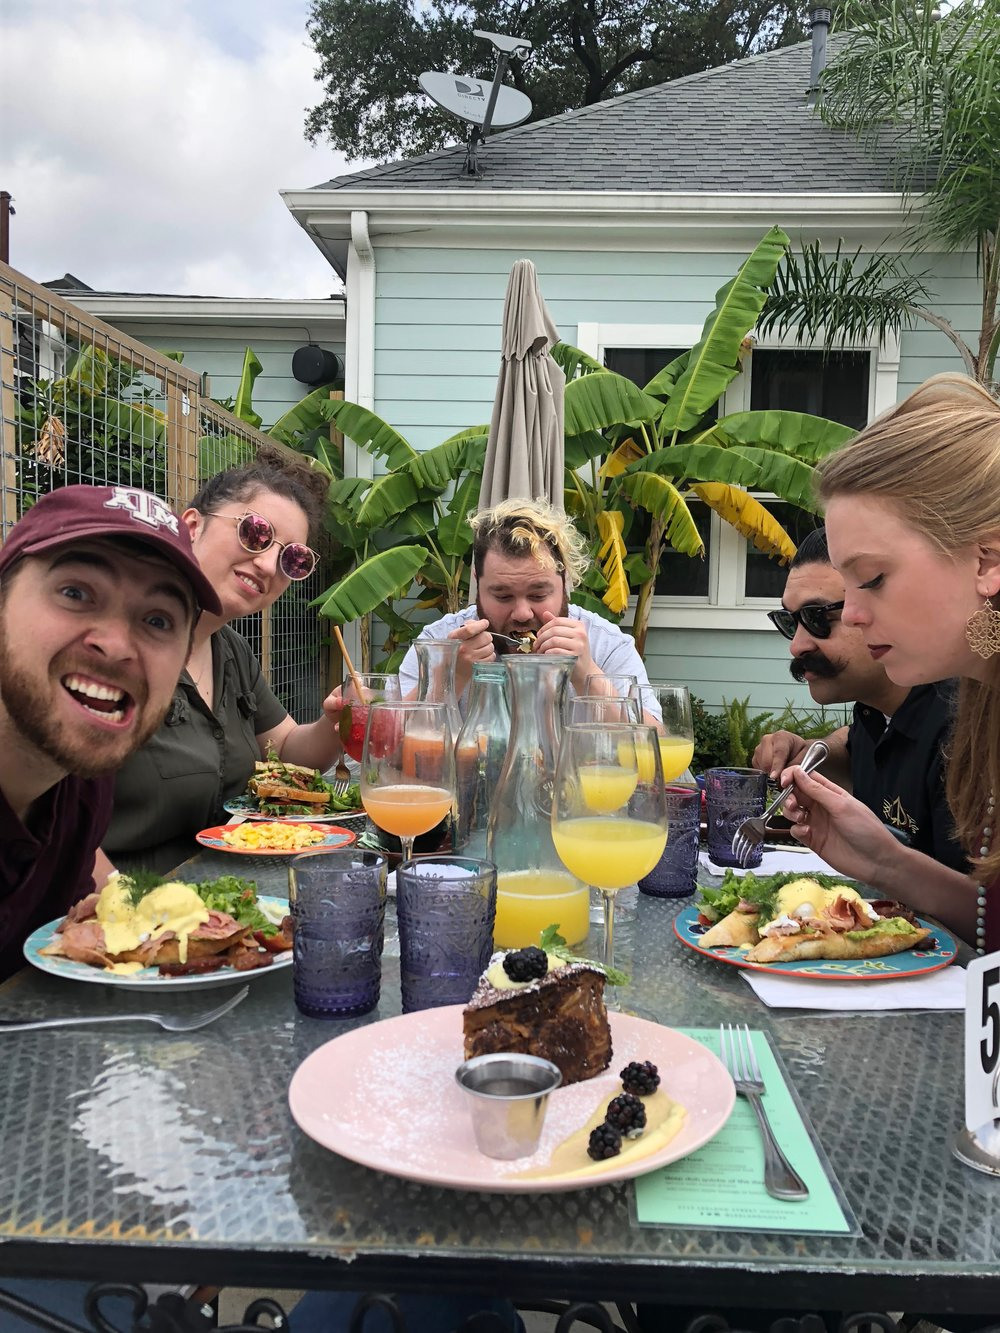 Doesn't this just make you want to brunch with us??